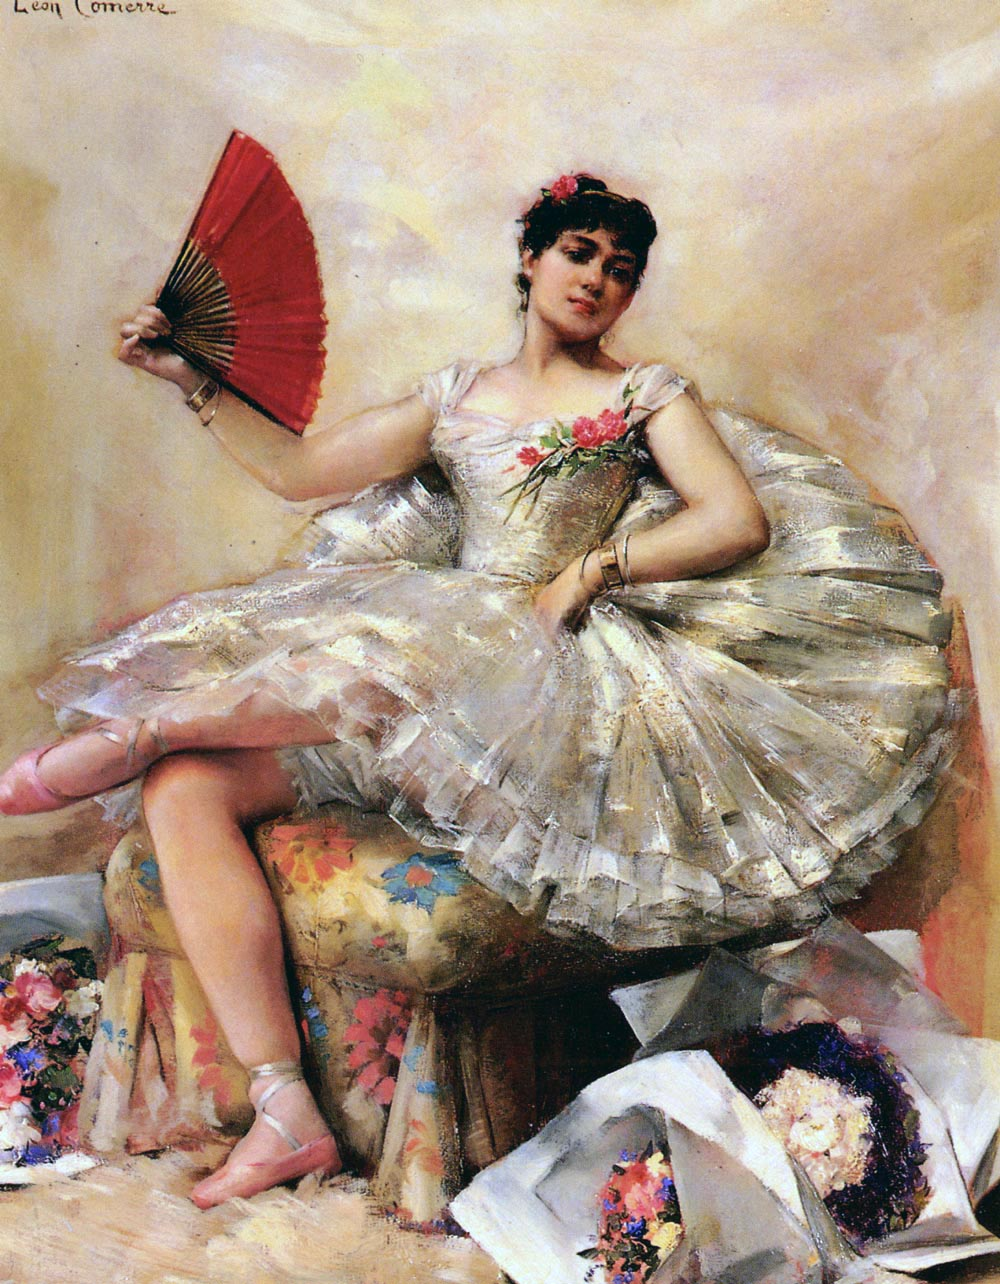 https://i1.wp.com/upload.wikimedia.org/wikipedia/commons/4/4c/Comerre_Leon_Francois_Portrait_Of_The_Ballerina_Rosita_Mauri.jpg